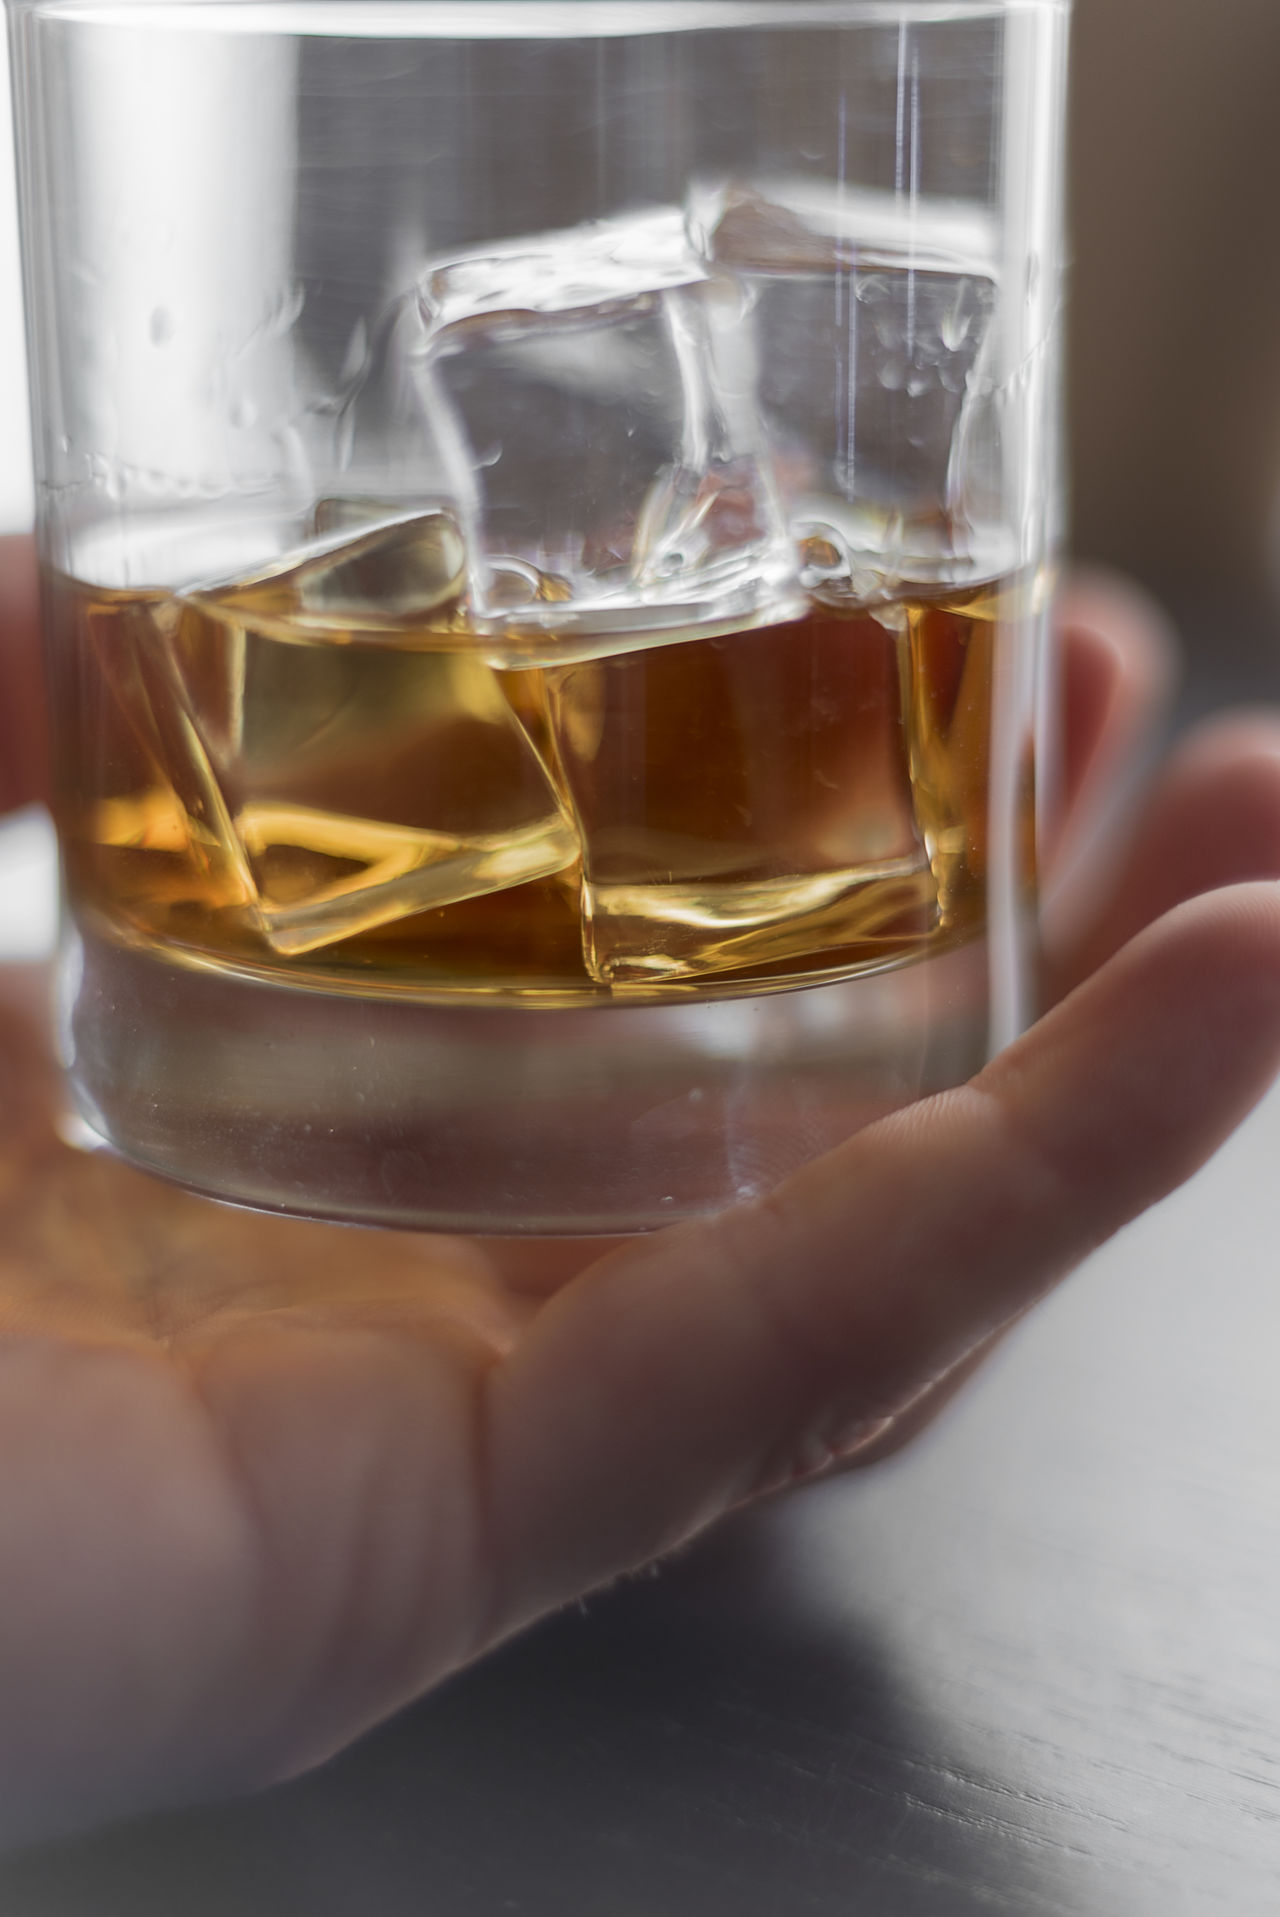 Macro whiskey in hand Adult Adults Only Alcohol Beverage Brandy Celebration Close-up Day Dram Drink Drinking Glass Food And Drink Freshness Holding Human Body Part Human Hand One Person Only Women People Refreshment Snifter Whiskey Women